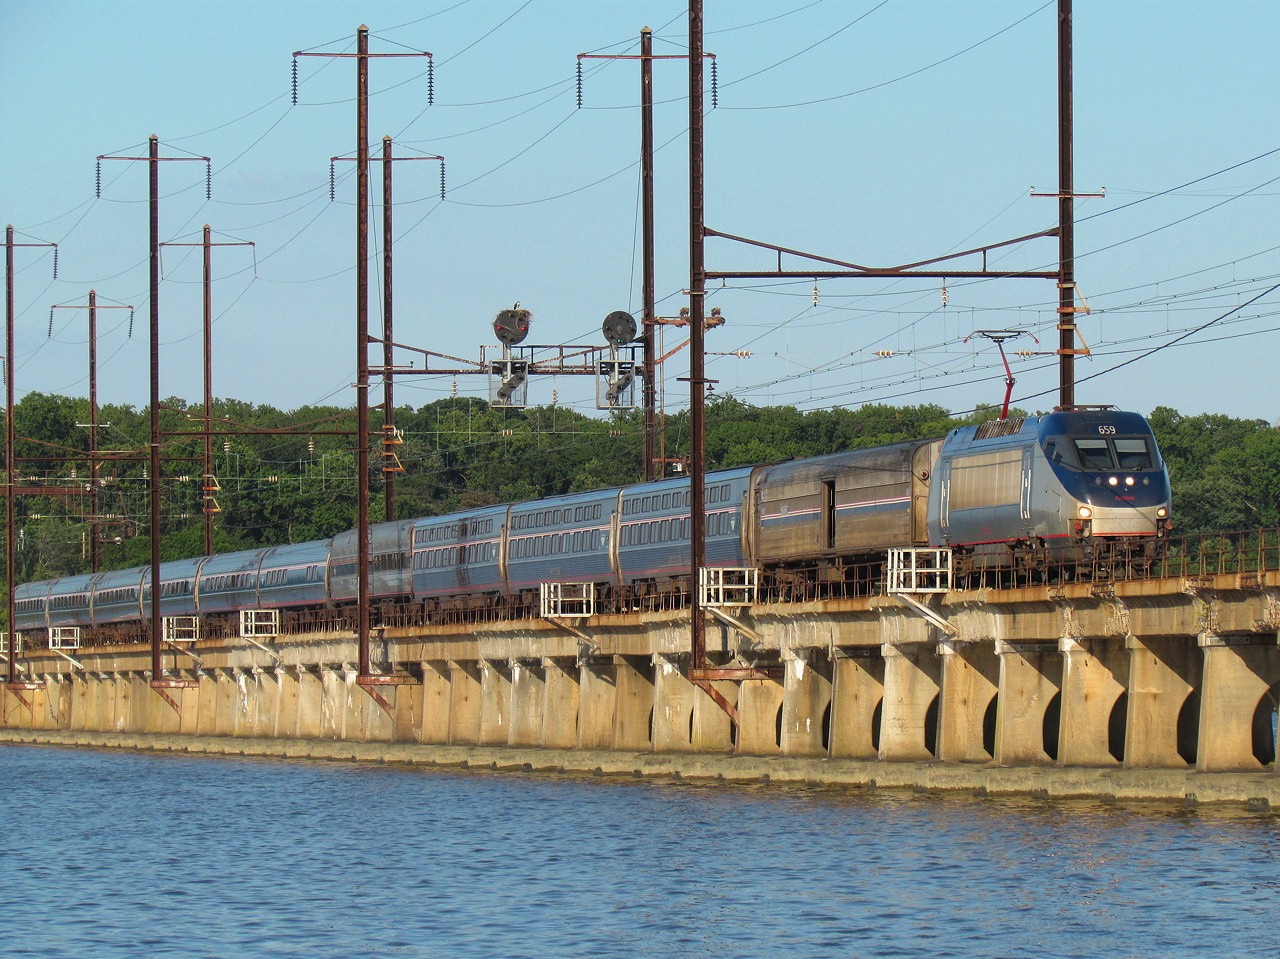 https://www.acm.jhu.edu//~sthurmovik/Railpics/13-08-24_MIDWAY/Amt_695-Bush-River-lg.jpg